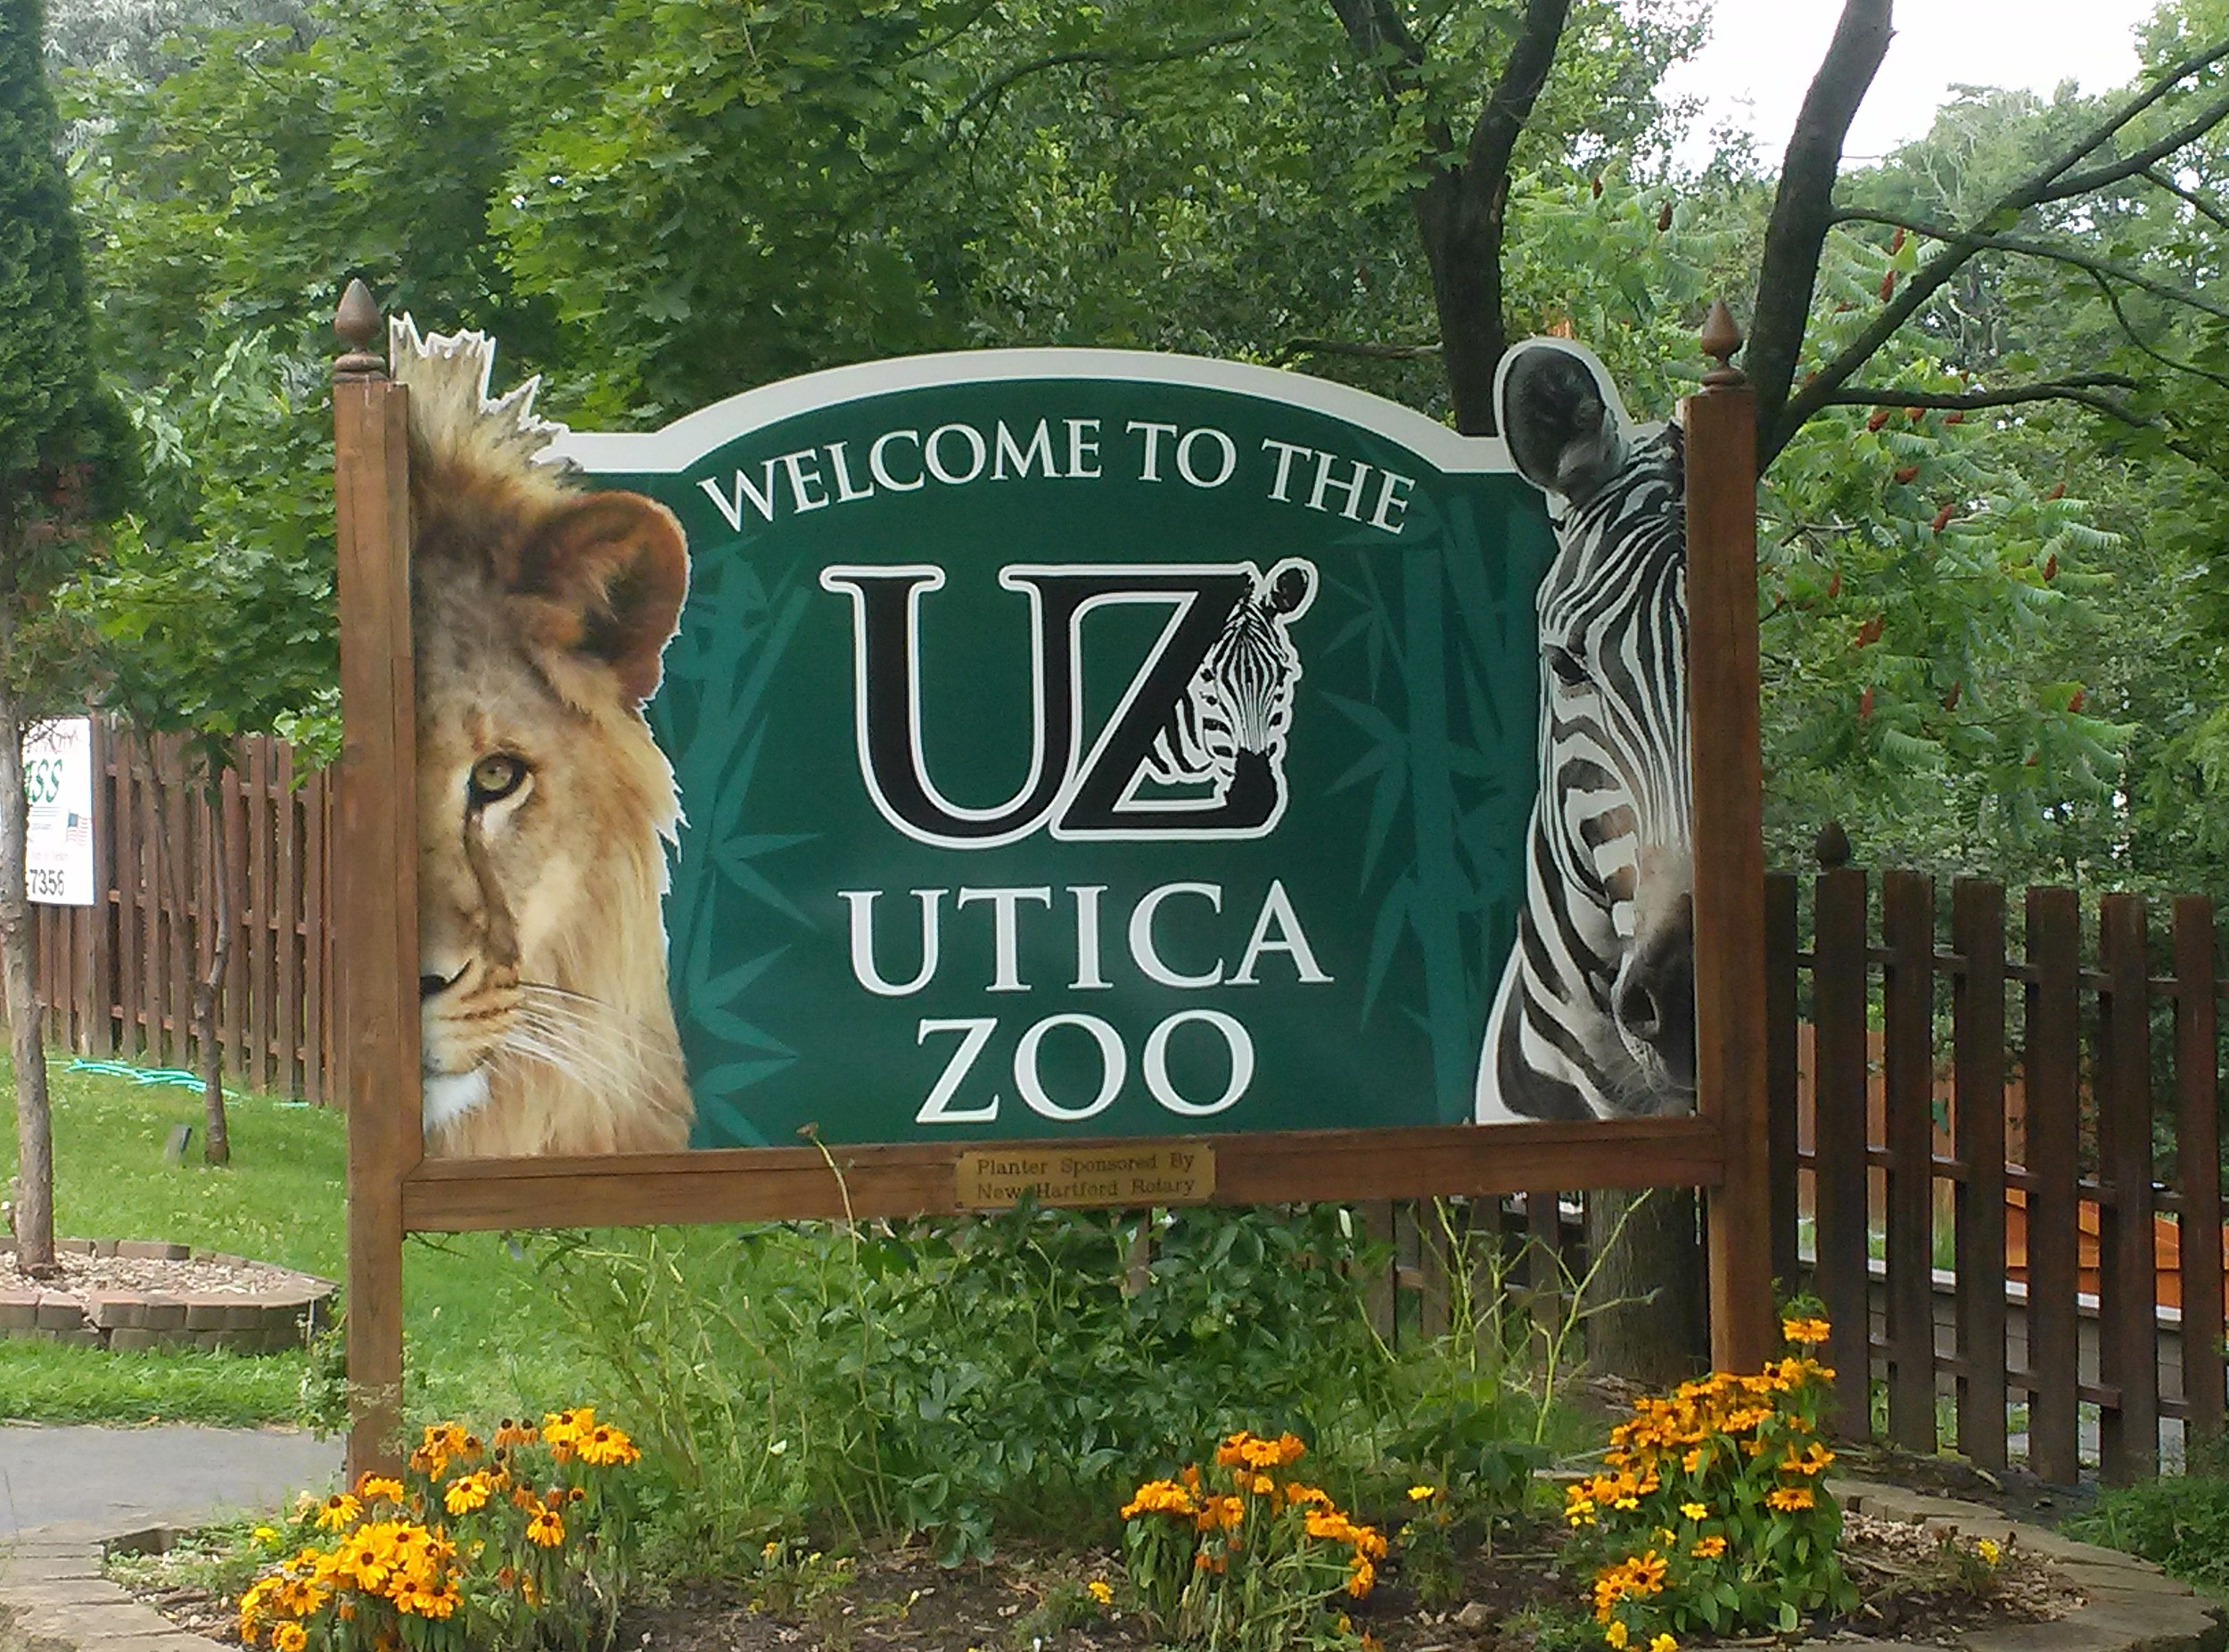 The Utica Zoo Sign